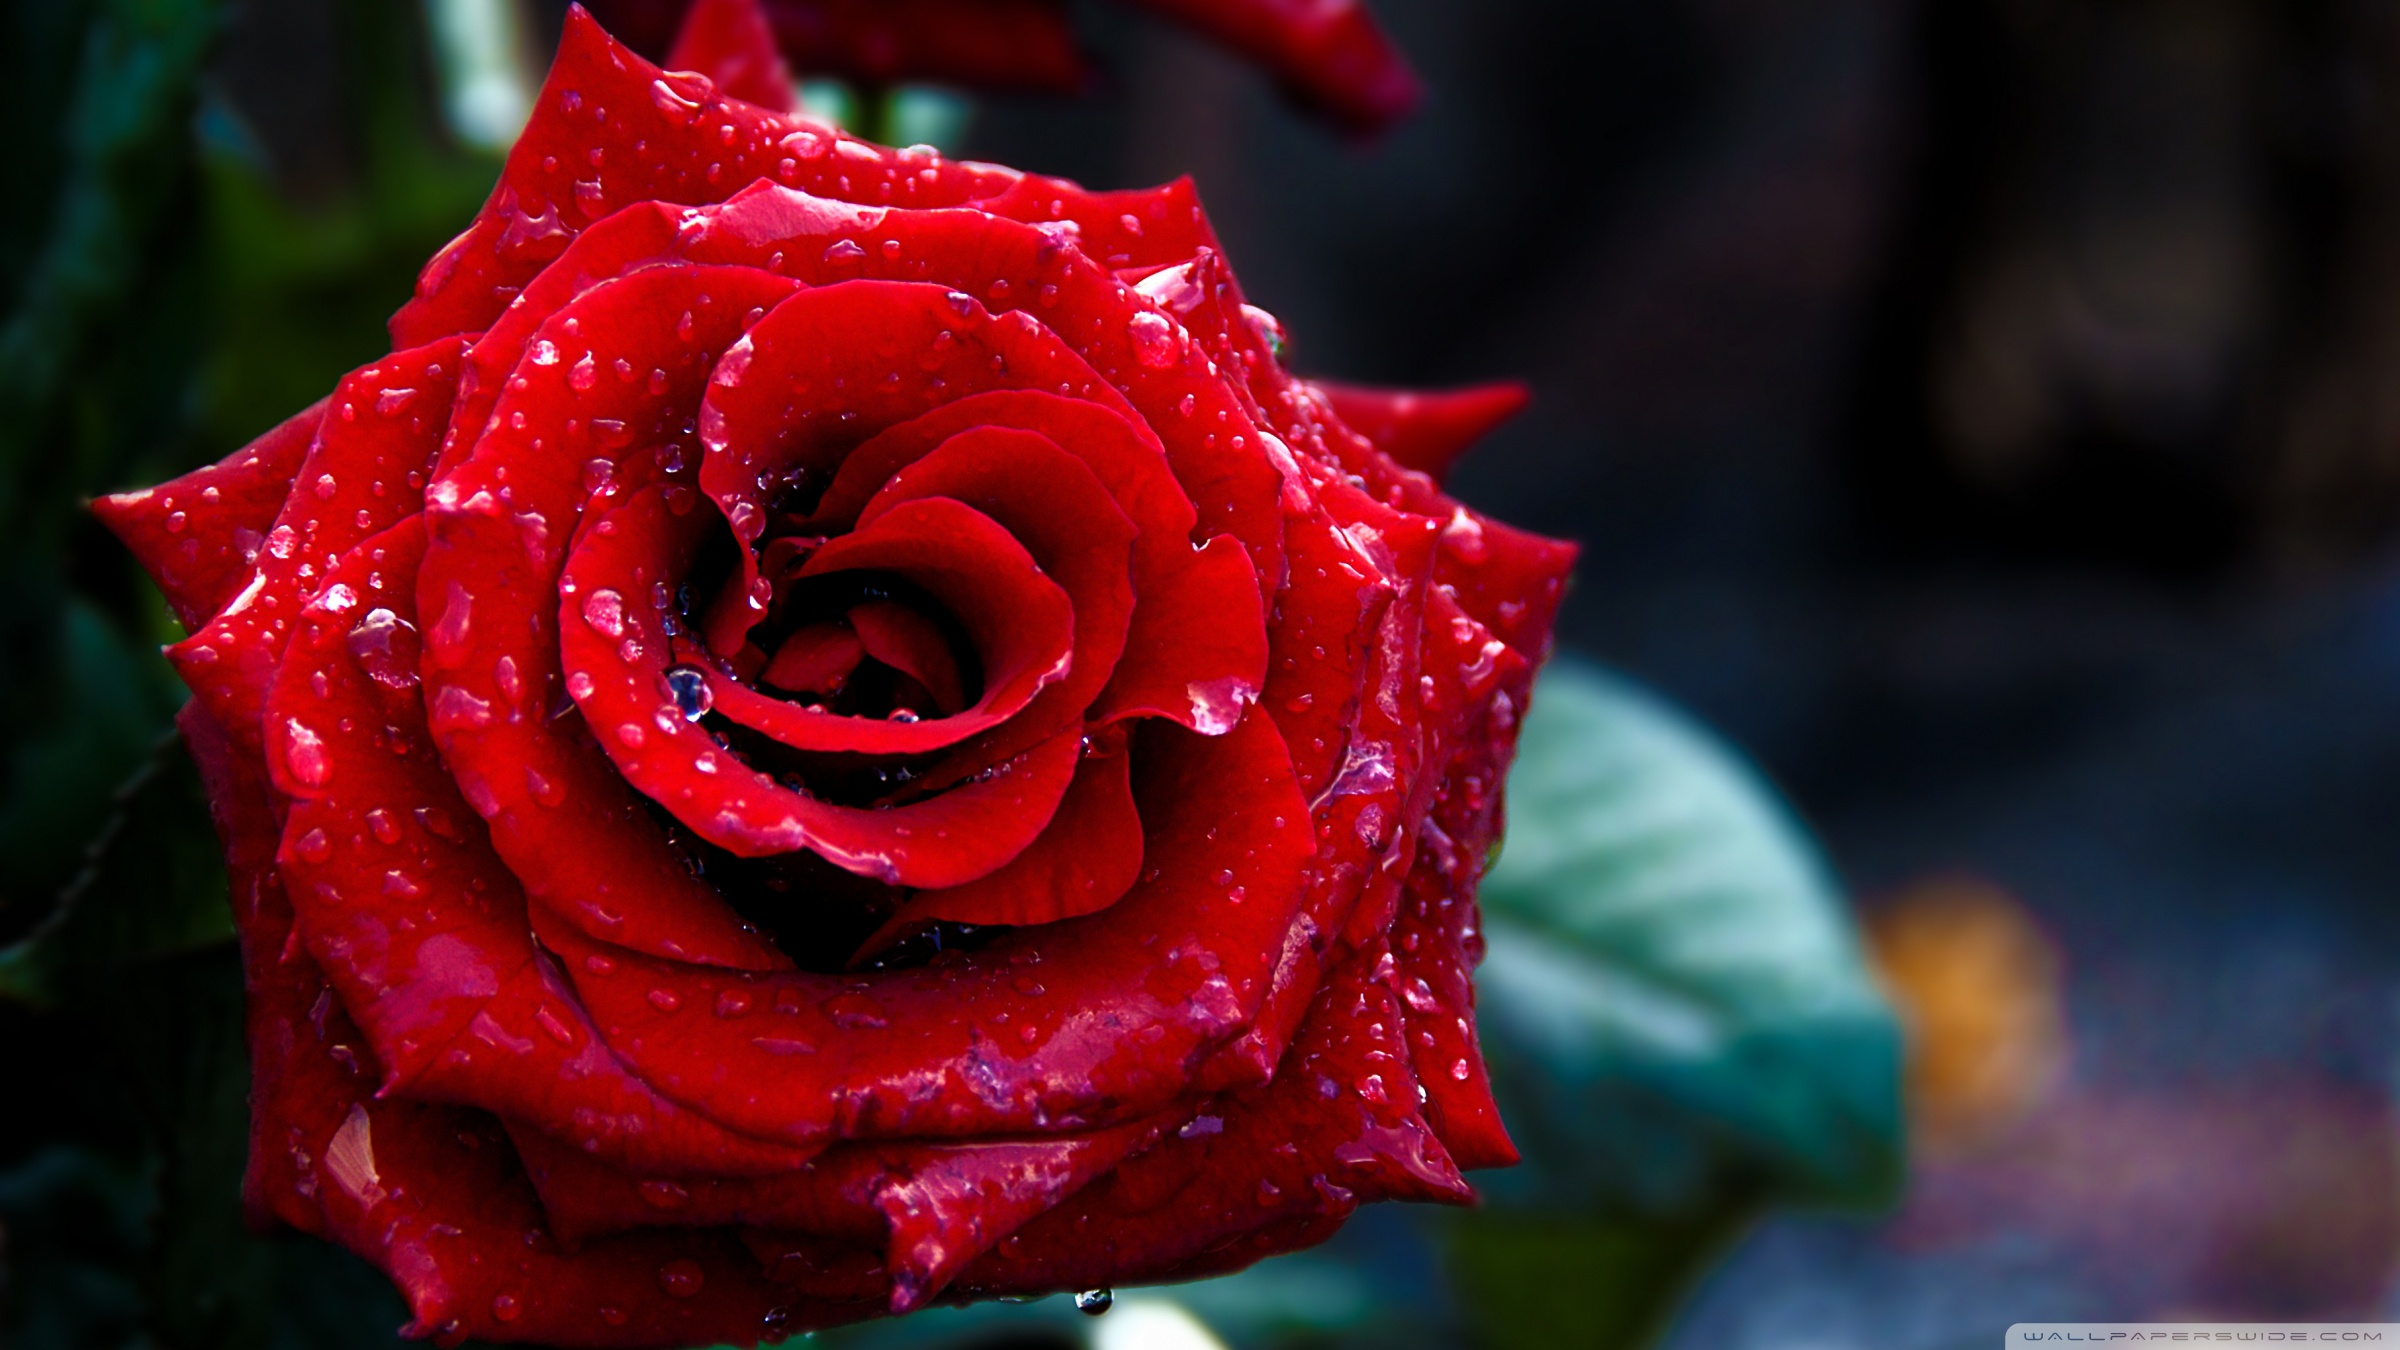 Red Rose Macro Shoot 4K HD Desktop Wallpaper For Ultra TV